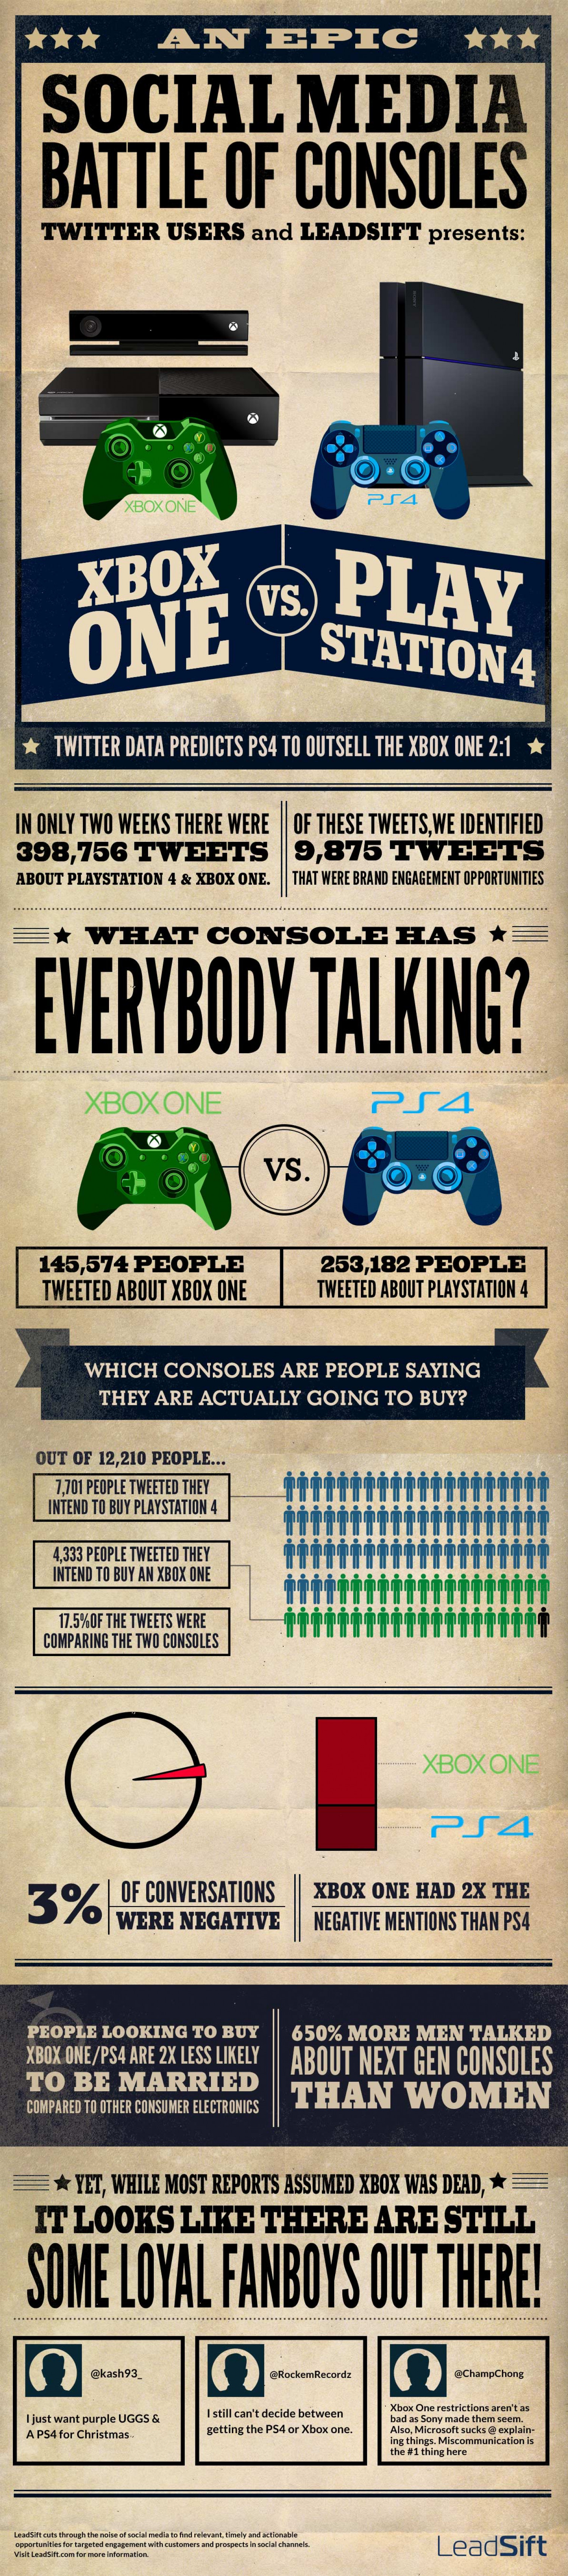 Social Media Battle of Consoles: xBox One vs. PS4 Infographic